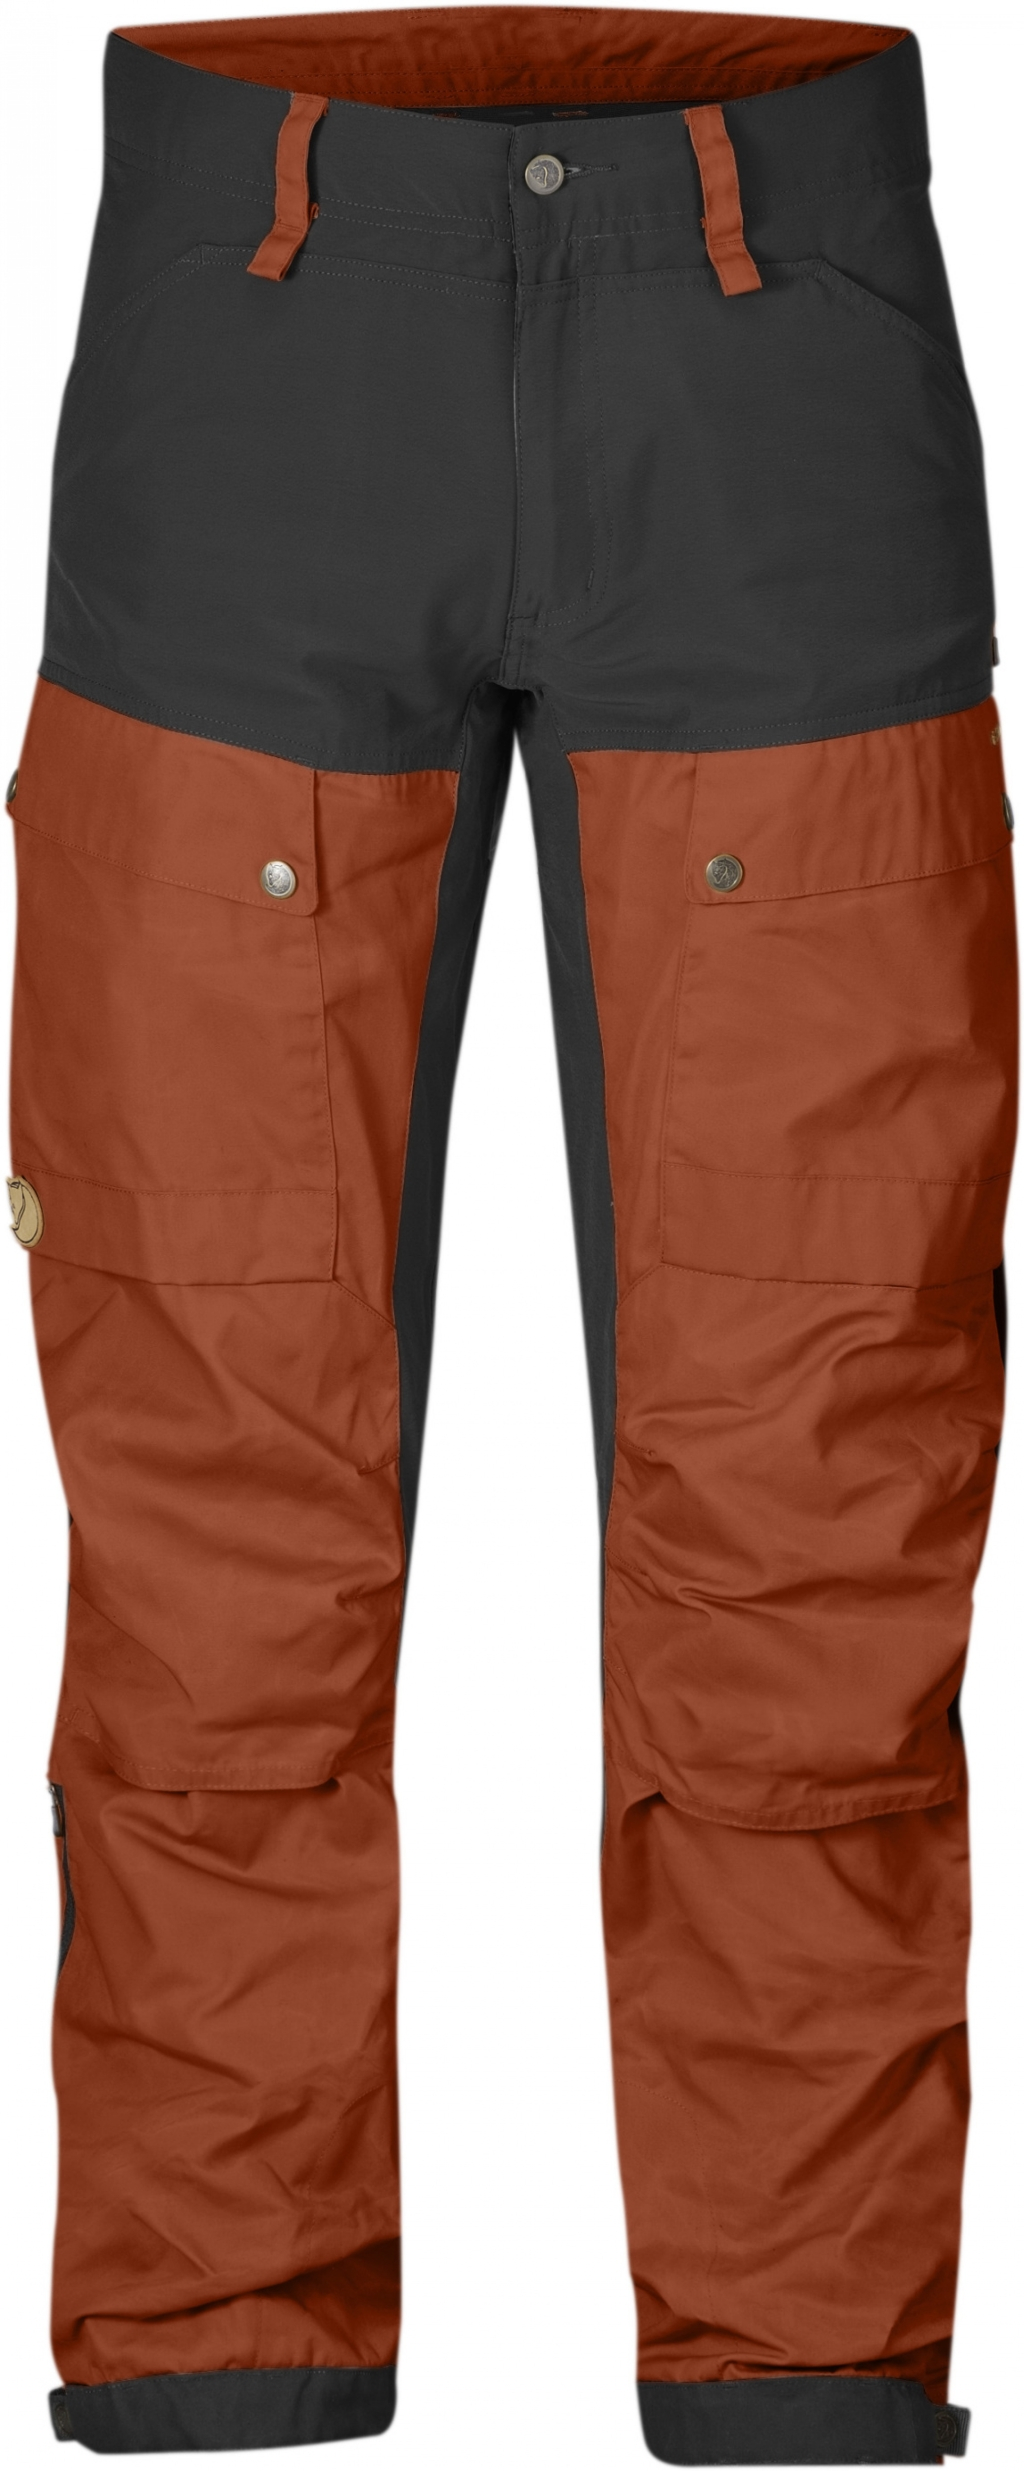 FjallRaven Keb Trousers Regular Autumn Leaf-30